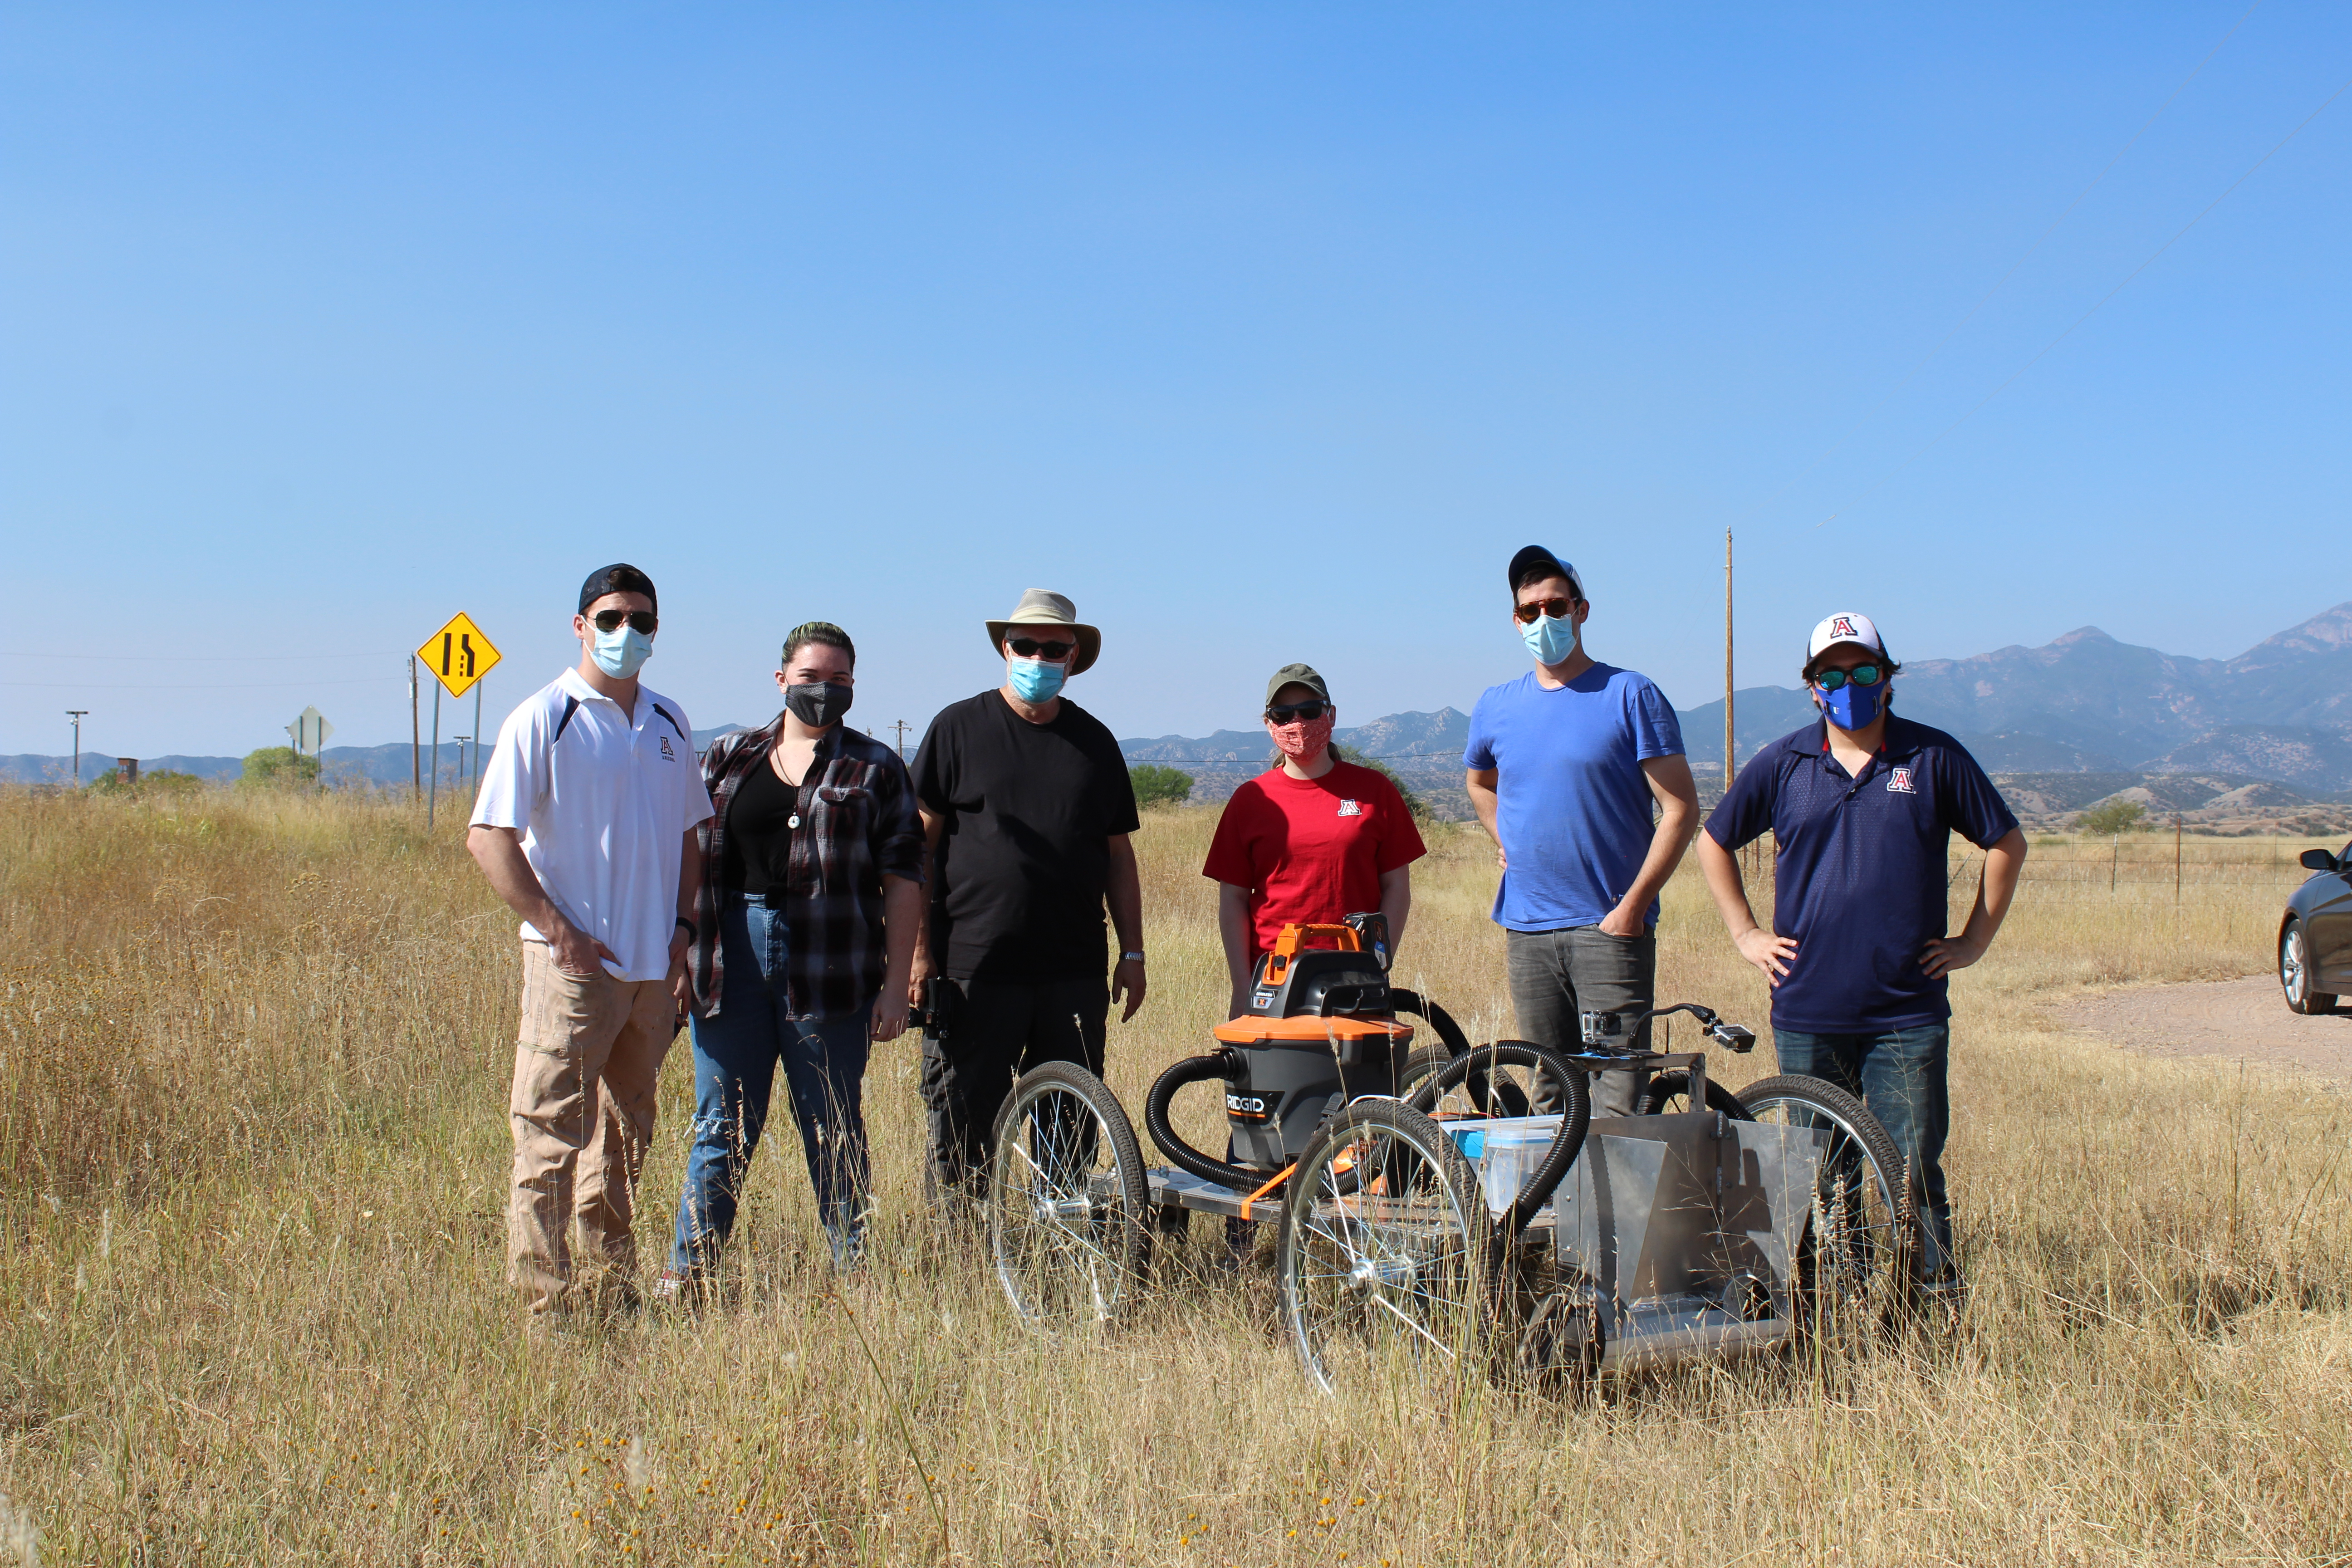 Six people stand in a field around a cart.